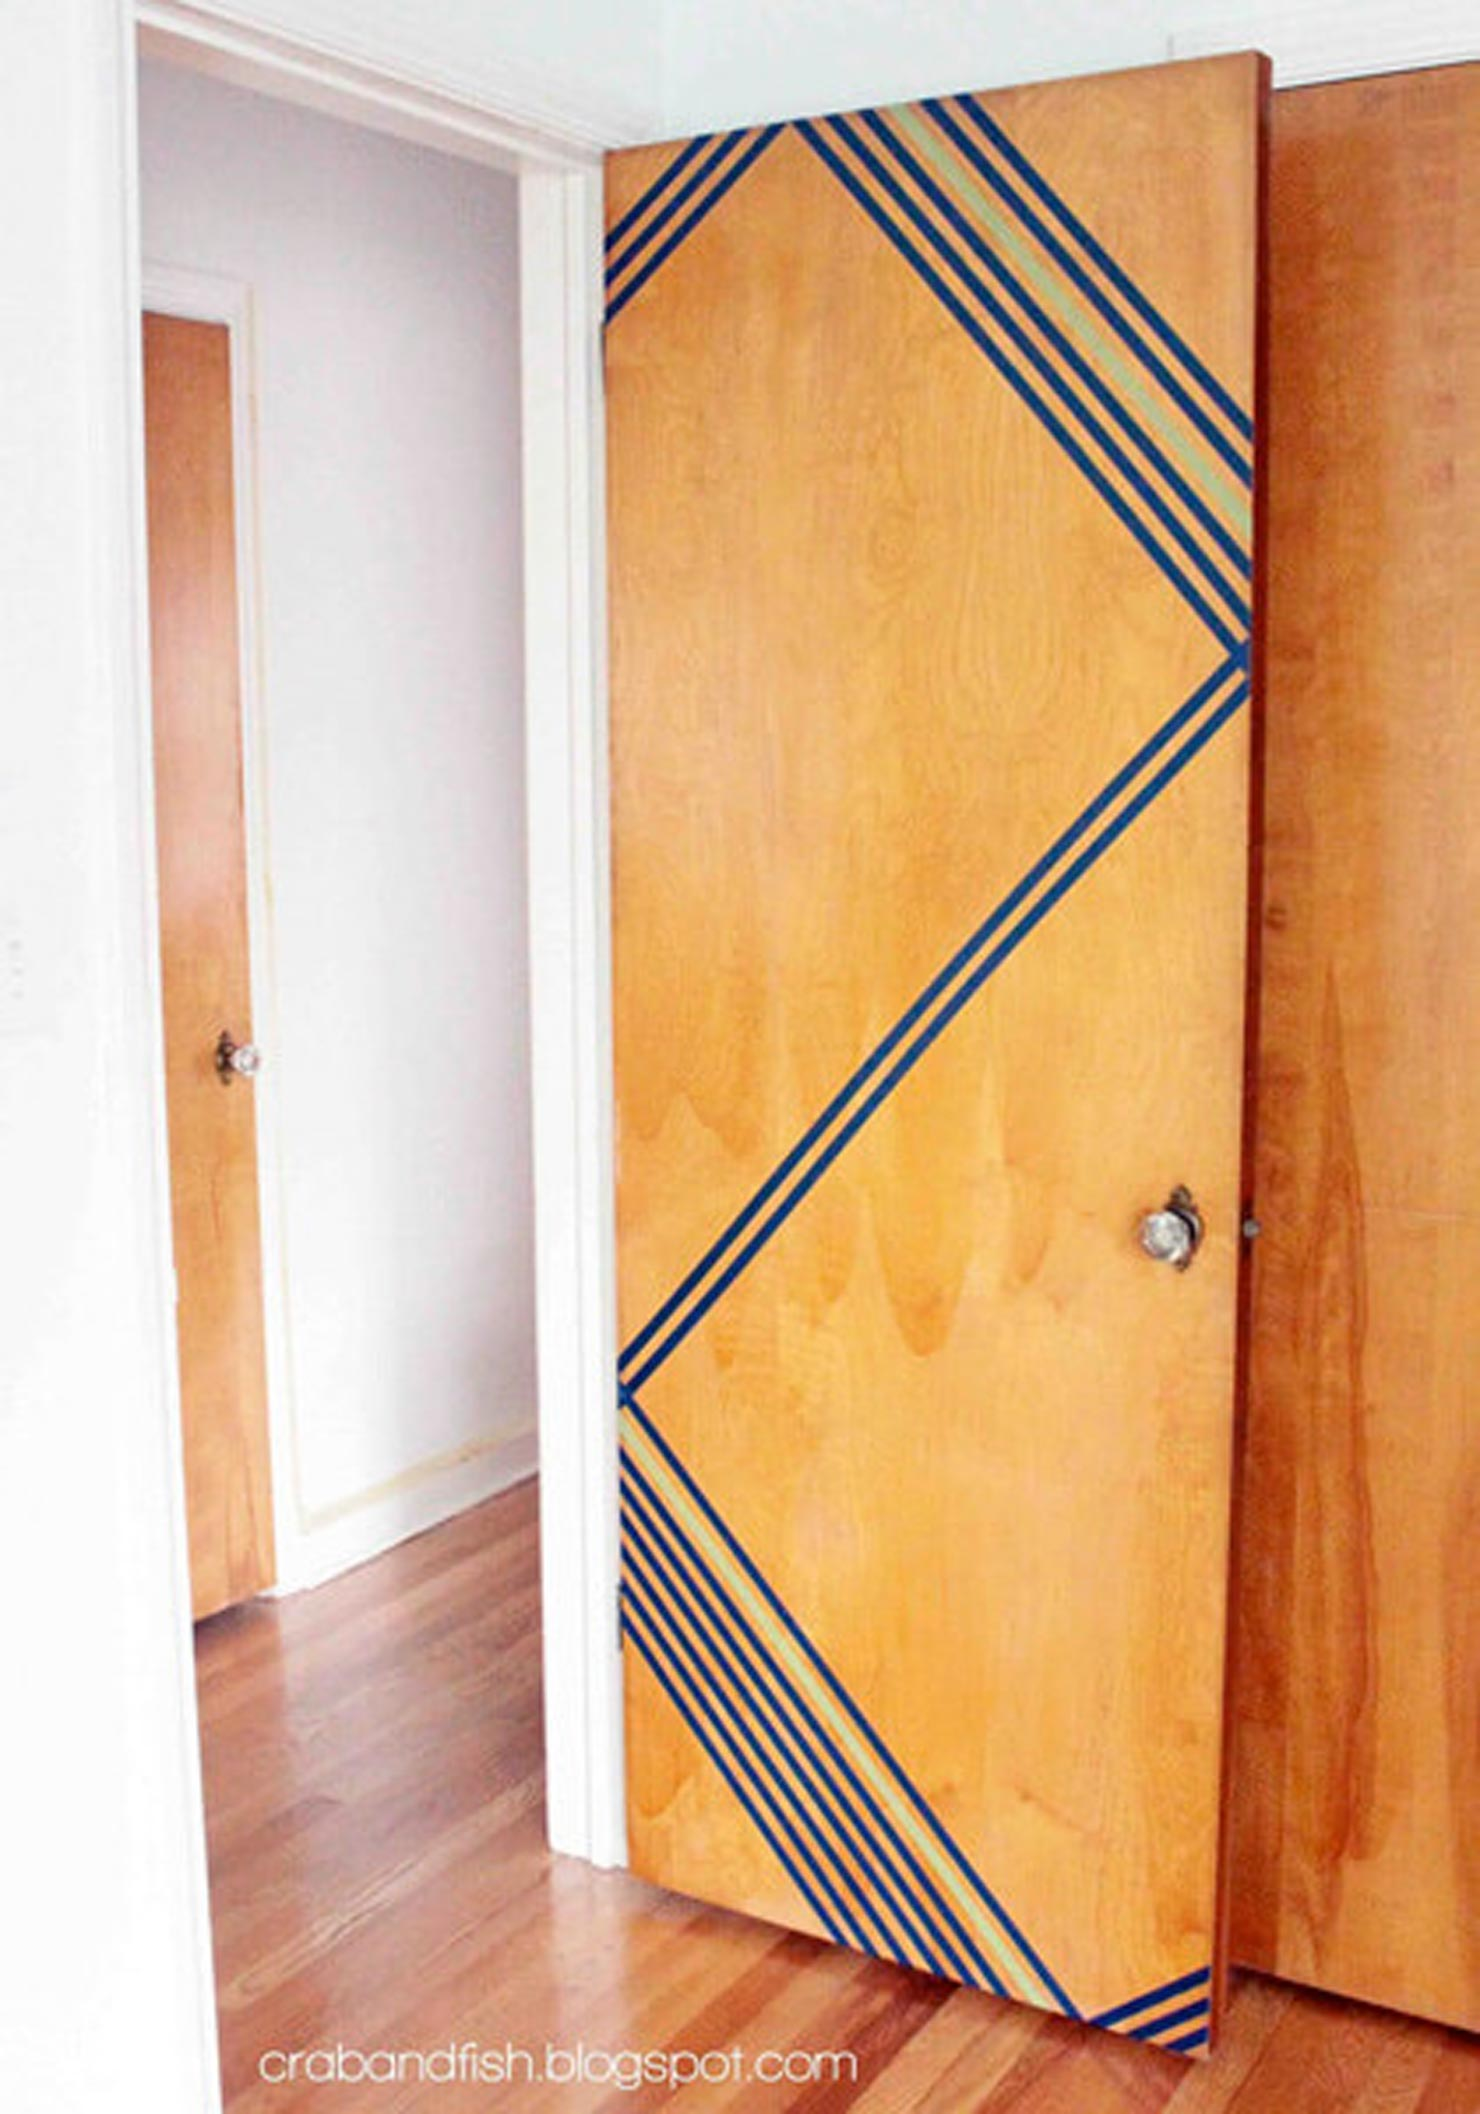 a door with a washi tape desigin on it.